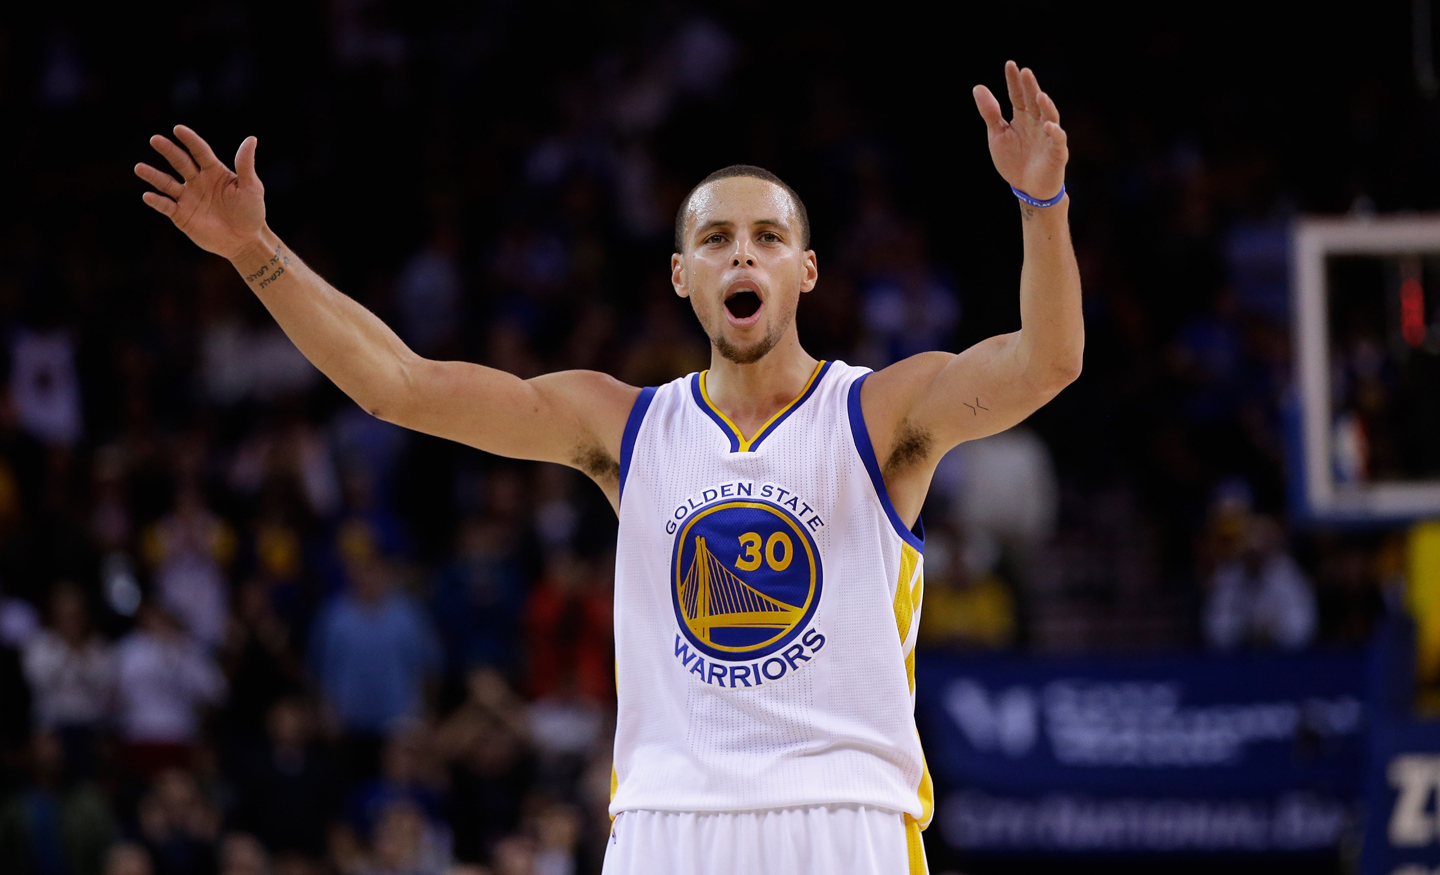 Stephen Curry tries to get the crowd louder during the fourth quarter of their game against the Houston Rockets at ORACLE Arena on December 10, 2014 in Oakland, California. (Ezra Shaw/Getty Images)